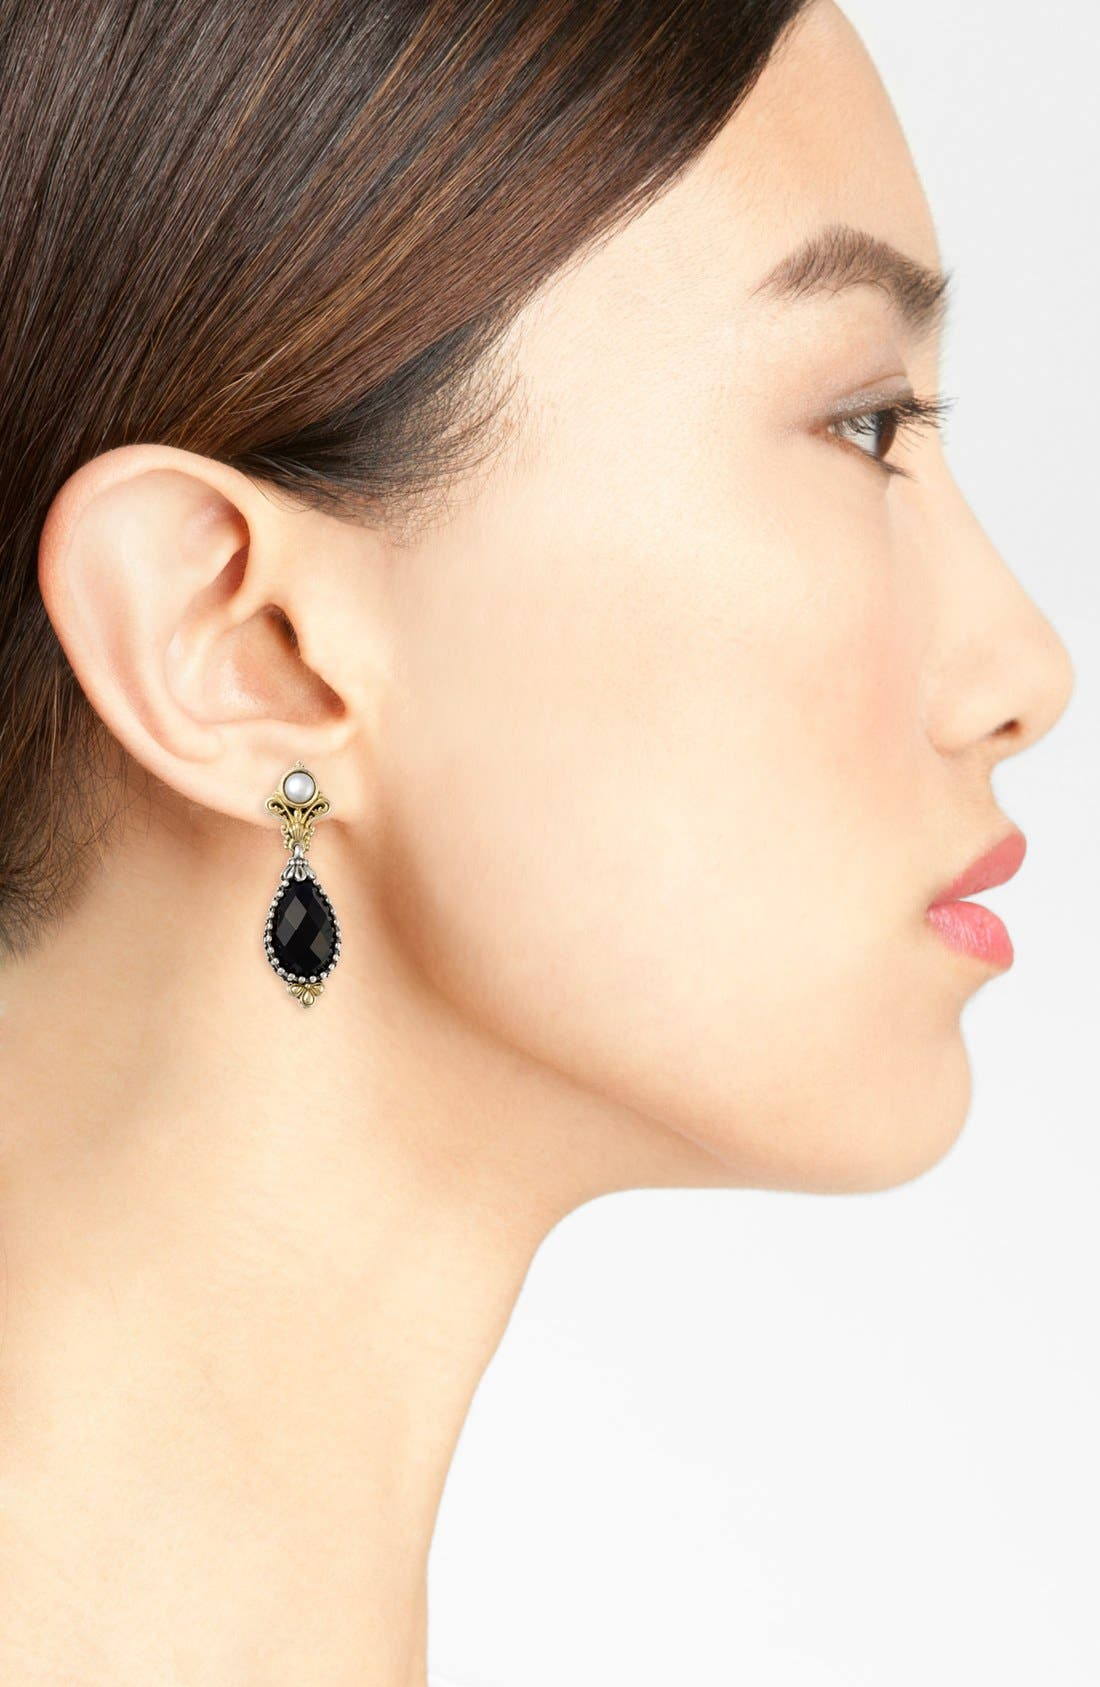 'Nykta' Pearl & Black Onyx Drop Earrings,                             Alternate thumbnail 2, color,                             Silver/ Gold/ Pearl